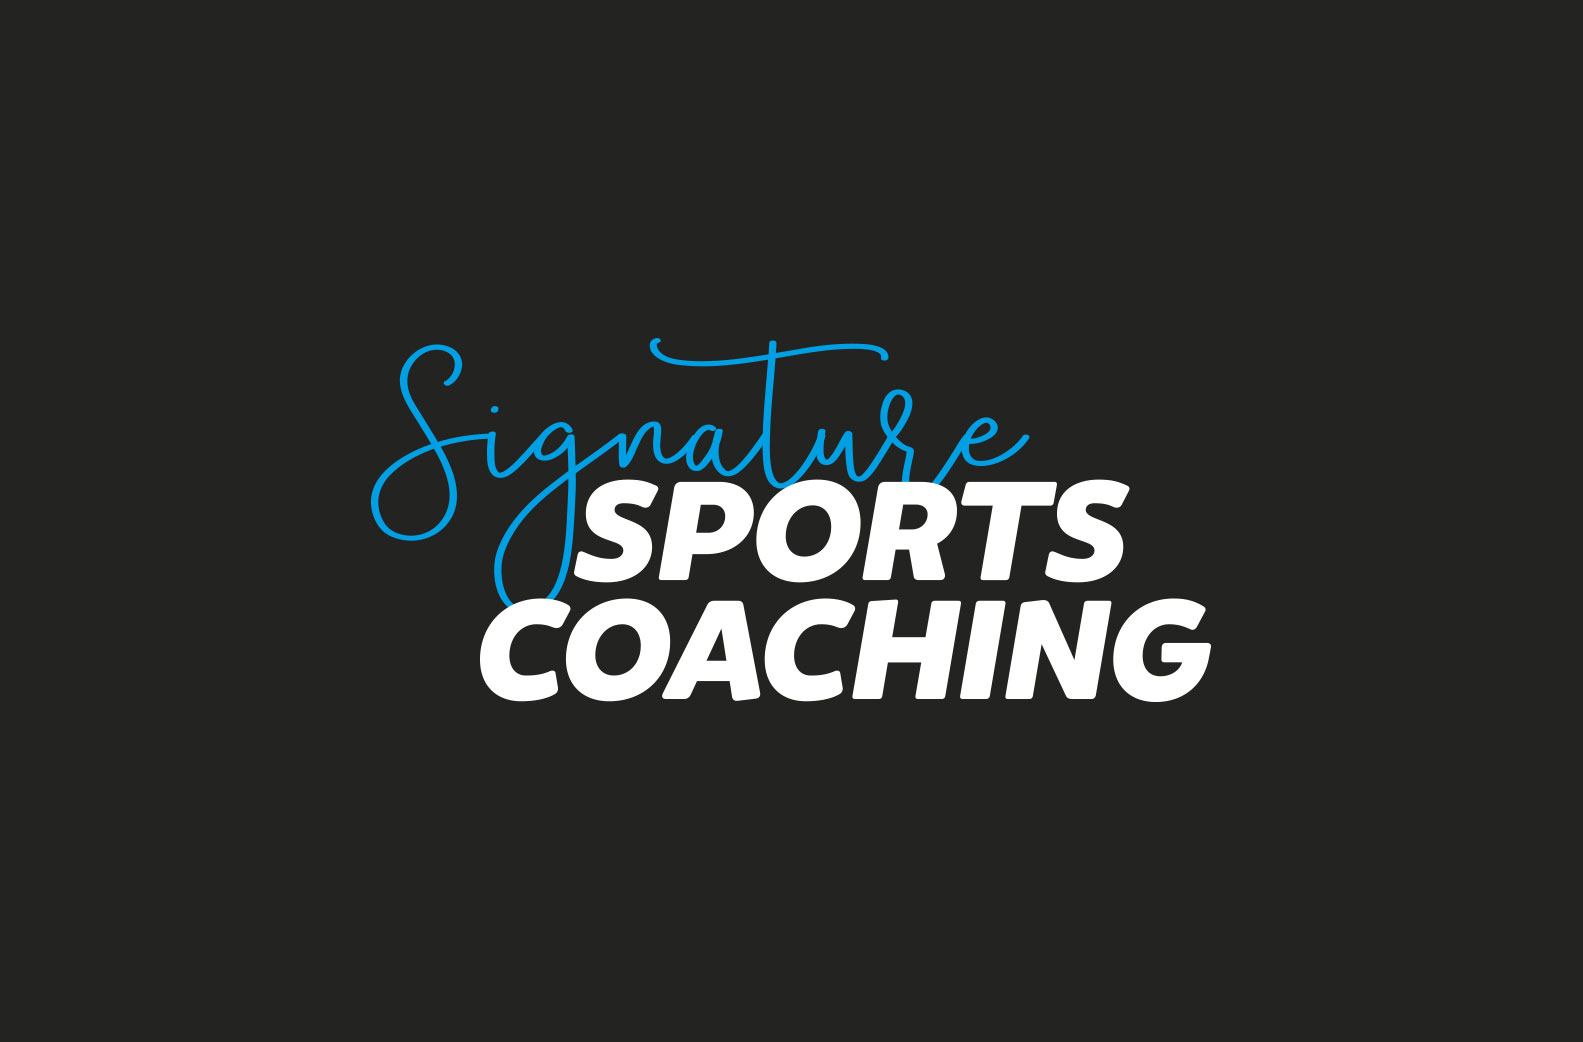 logo design for Bristol sports coach